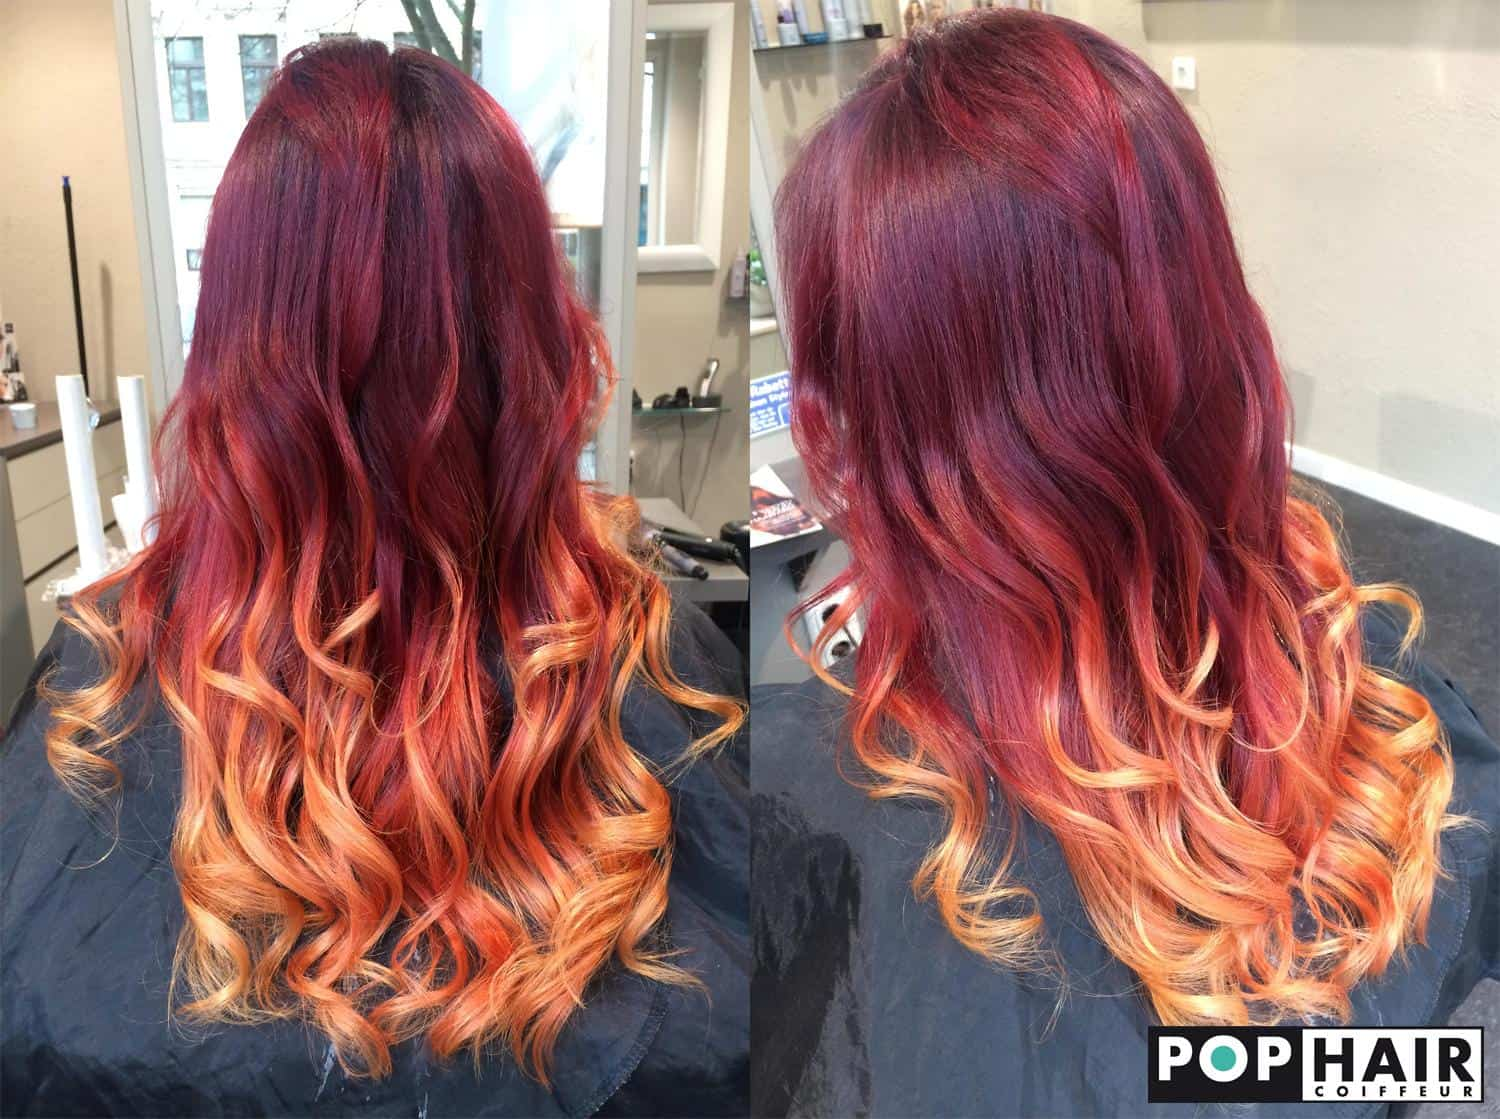 Feuriges Balayage POPHAIR